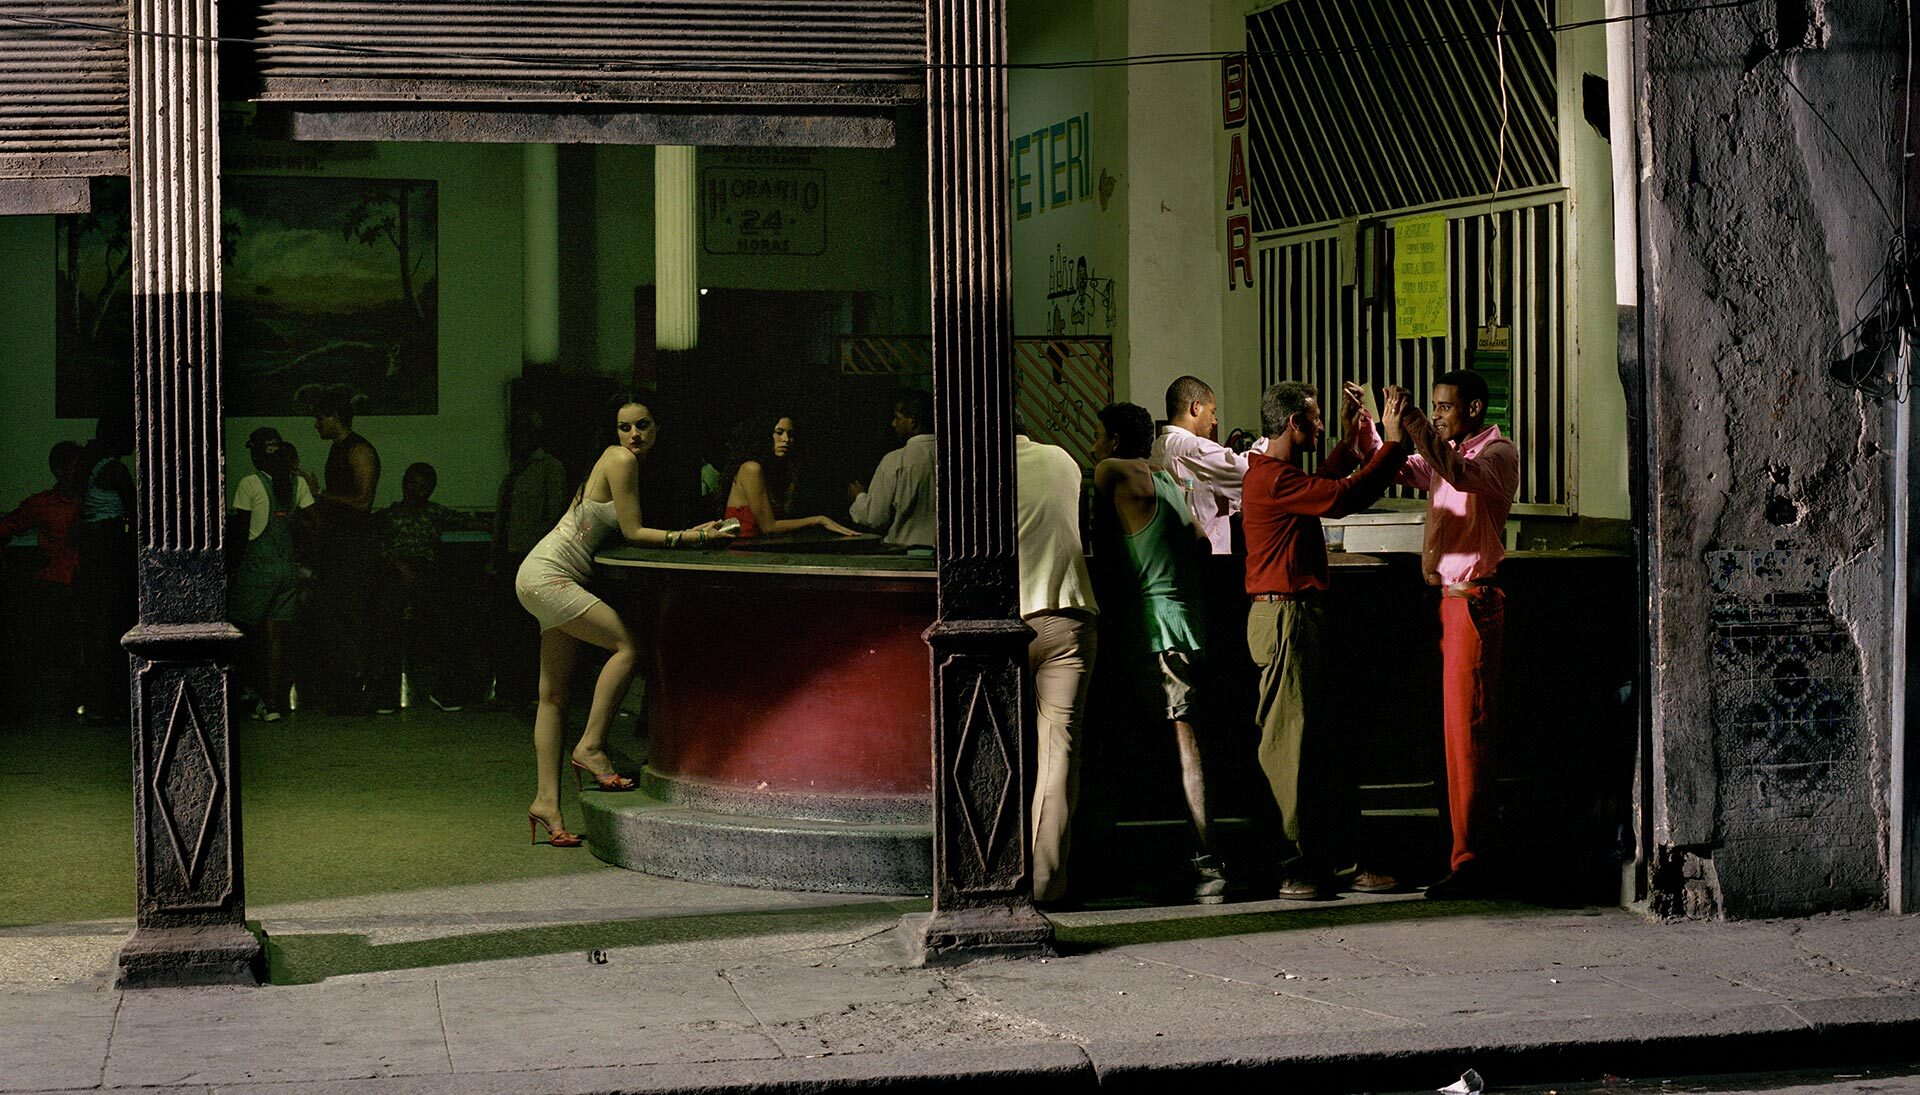 A print by Philip-Lorca diCorcia, W, March 2000, #12, 2000 (detail). for a news piece.